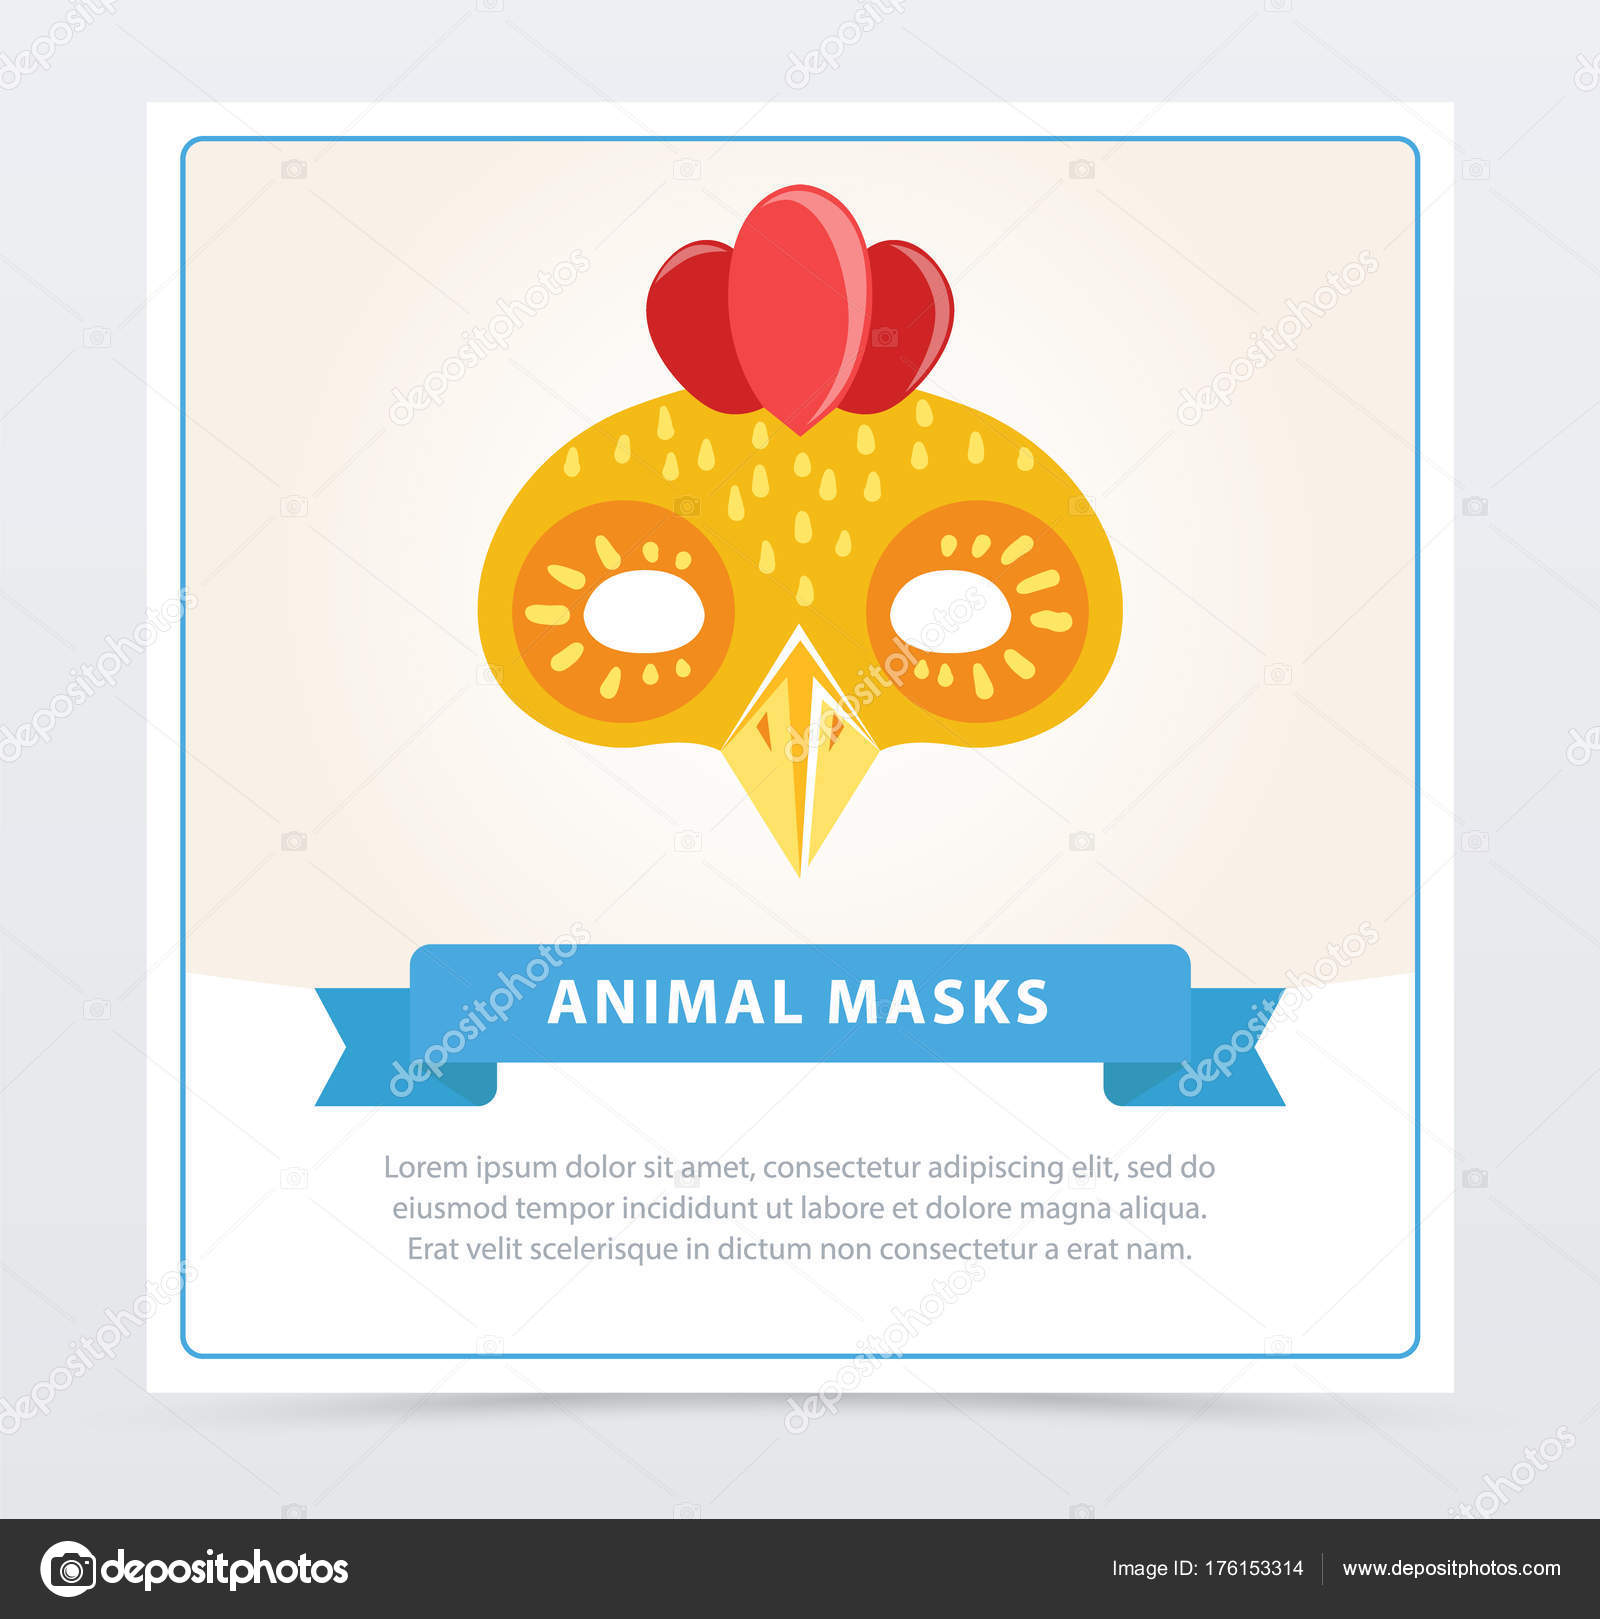 Cute Cartoon Chicken Mask Colorful Element For Children S Masquerade Or Kindergarten Party Flat